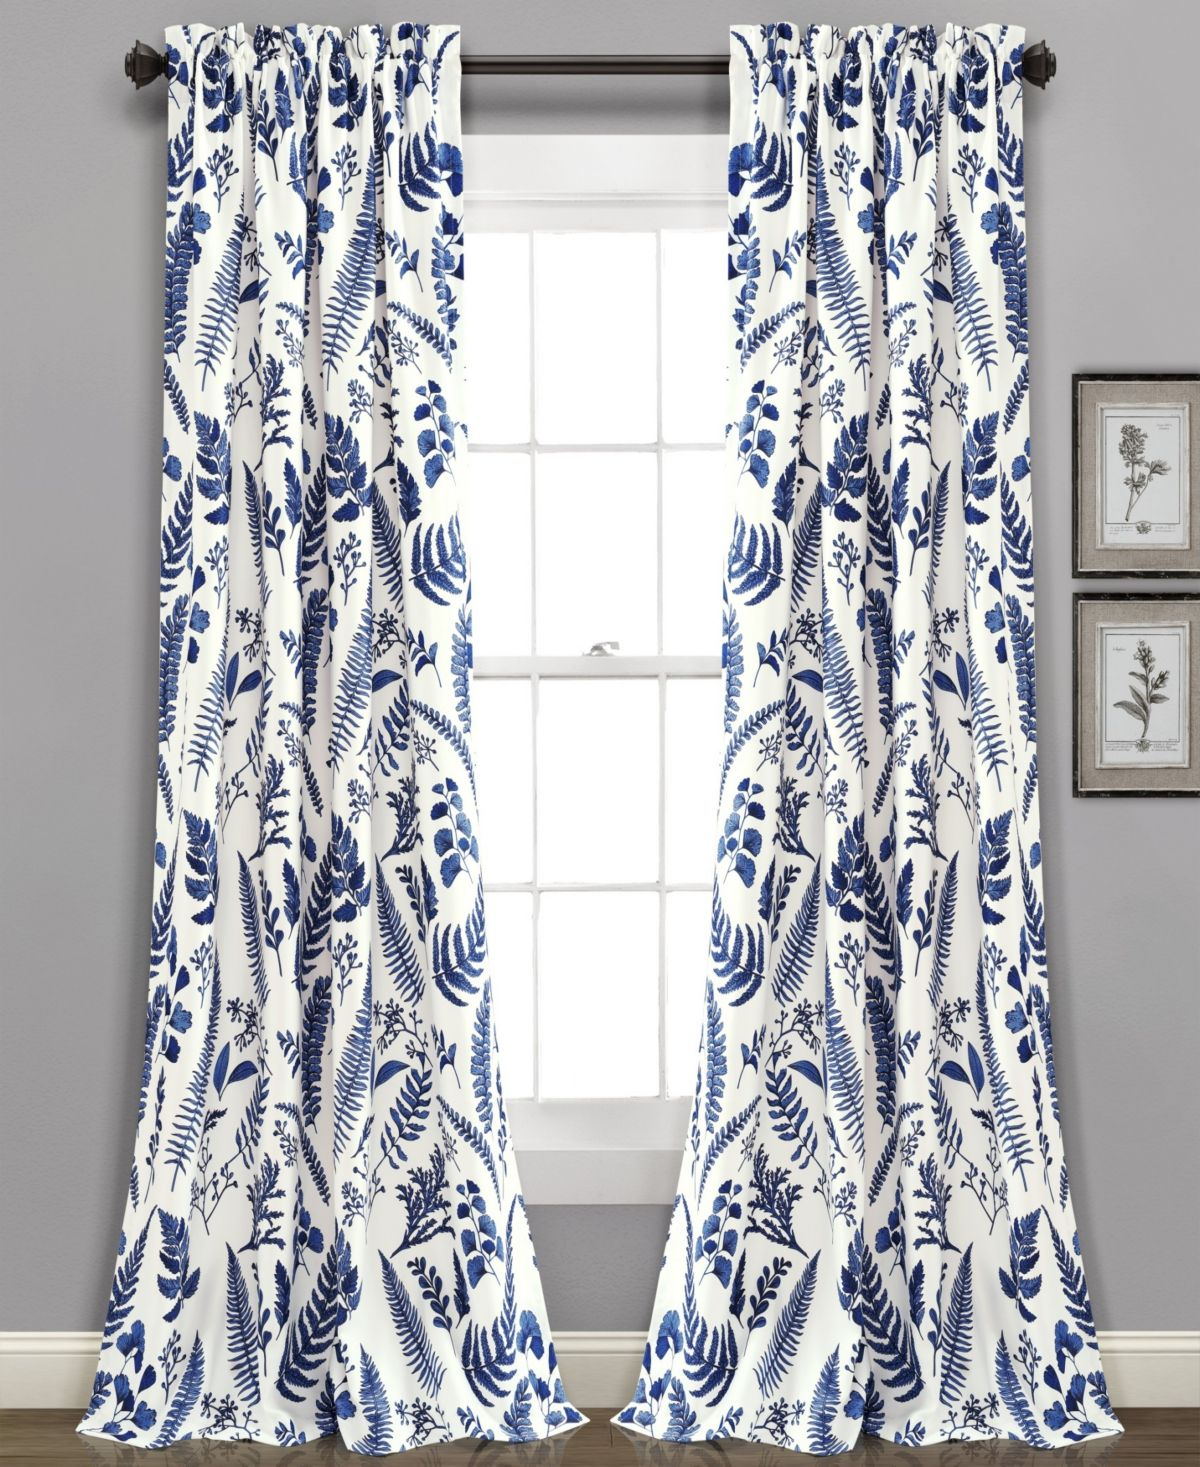 Lush Decor Devonia Botanical Print 52 X 84 Curtain Set Reviews